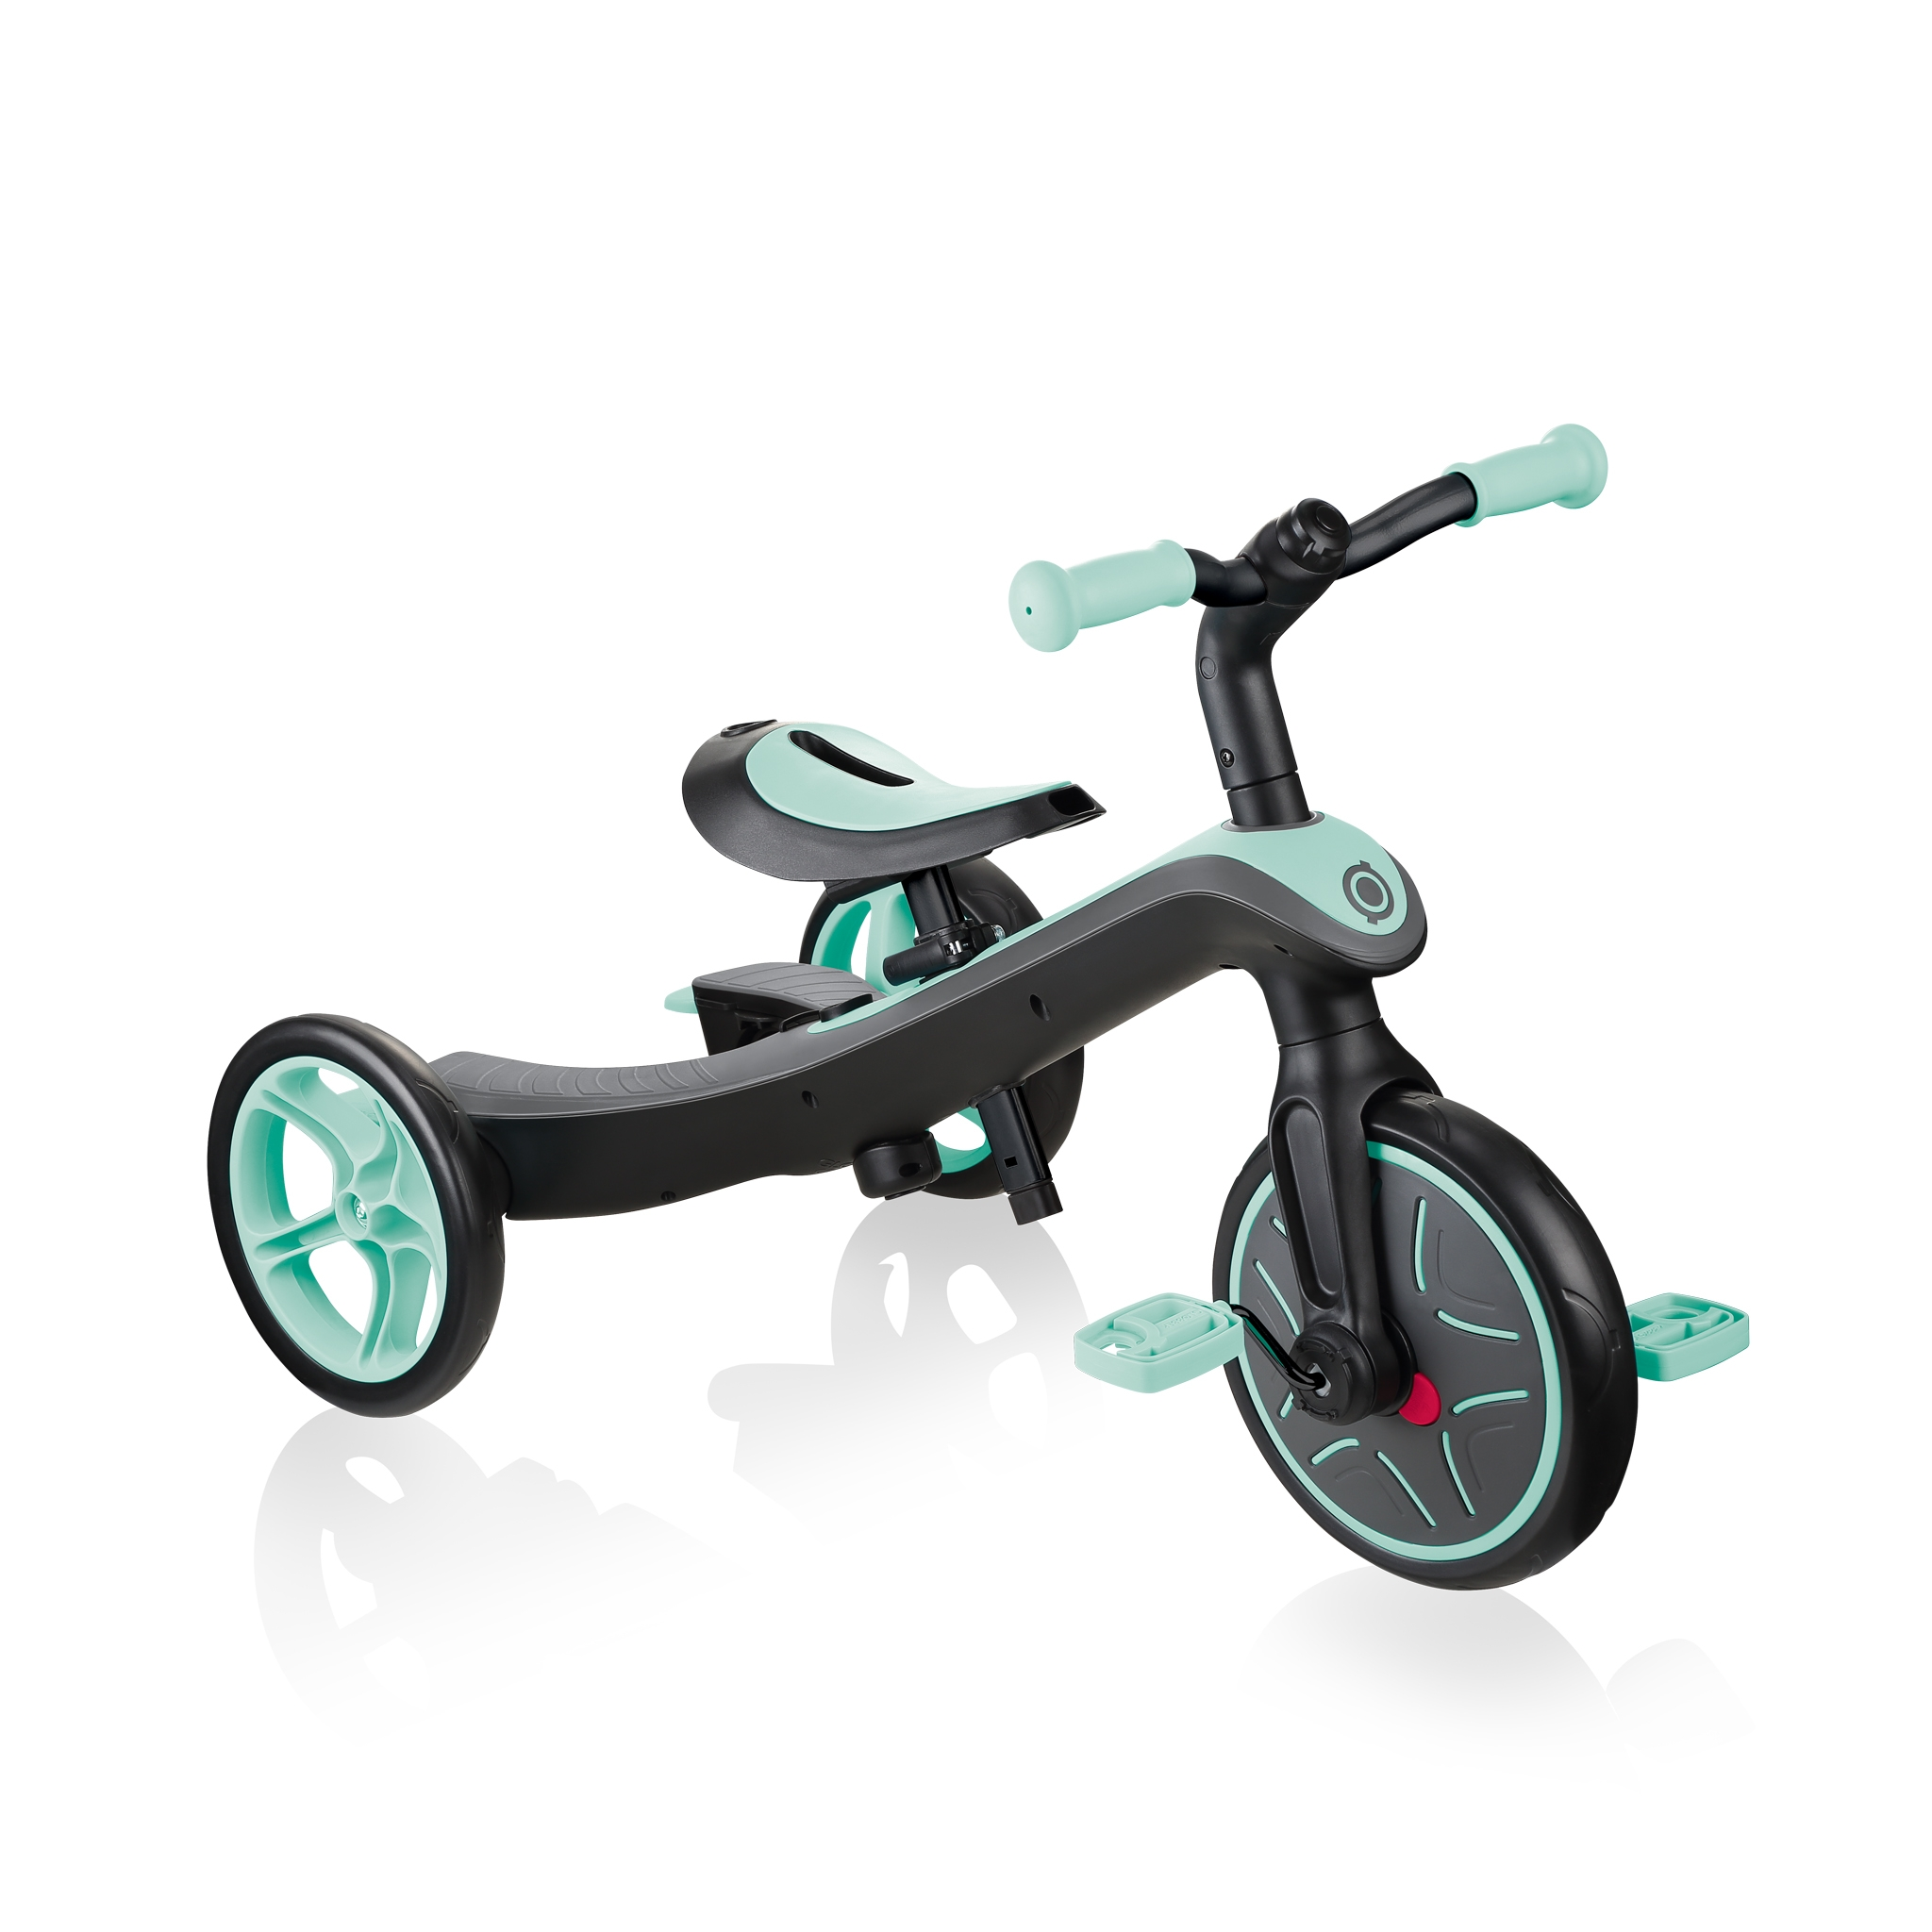 Globber-EXPLORER-TRIKE-4in1-all-in-one-baby-tricycle-and-kids-balance-bike-stage3-training-trike_mint